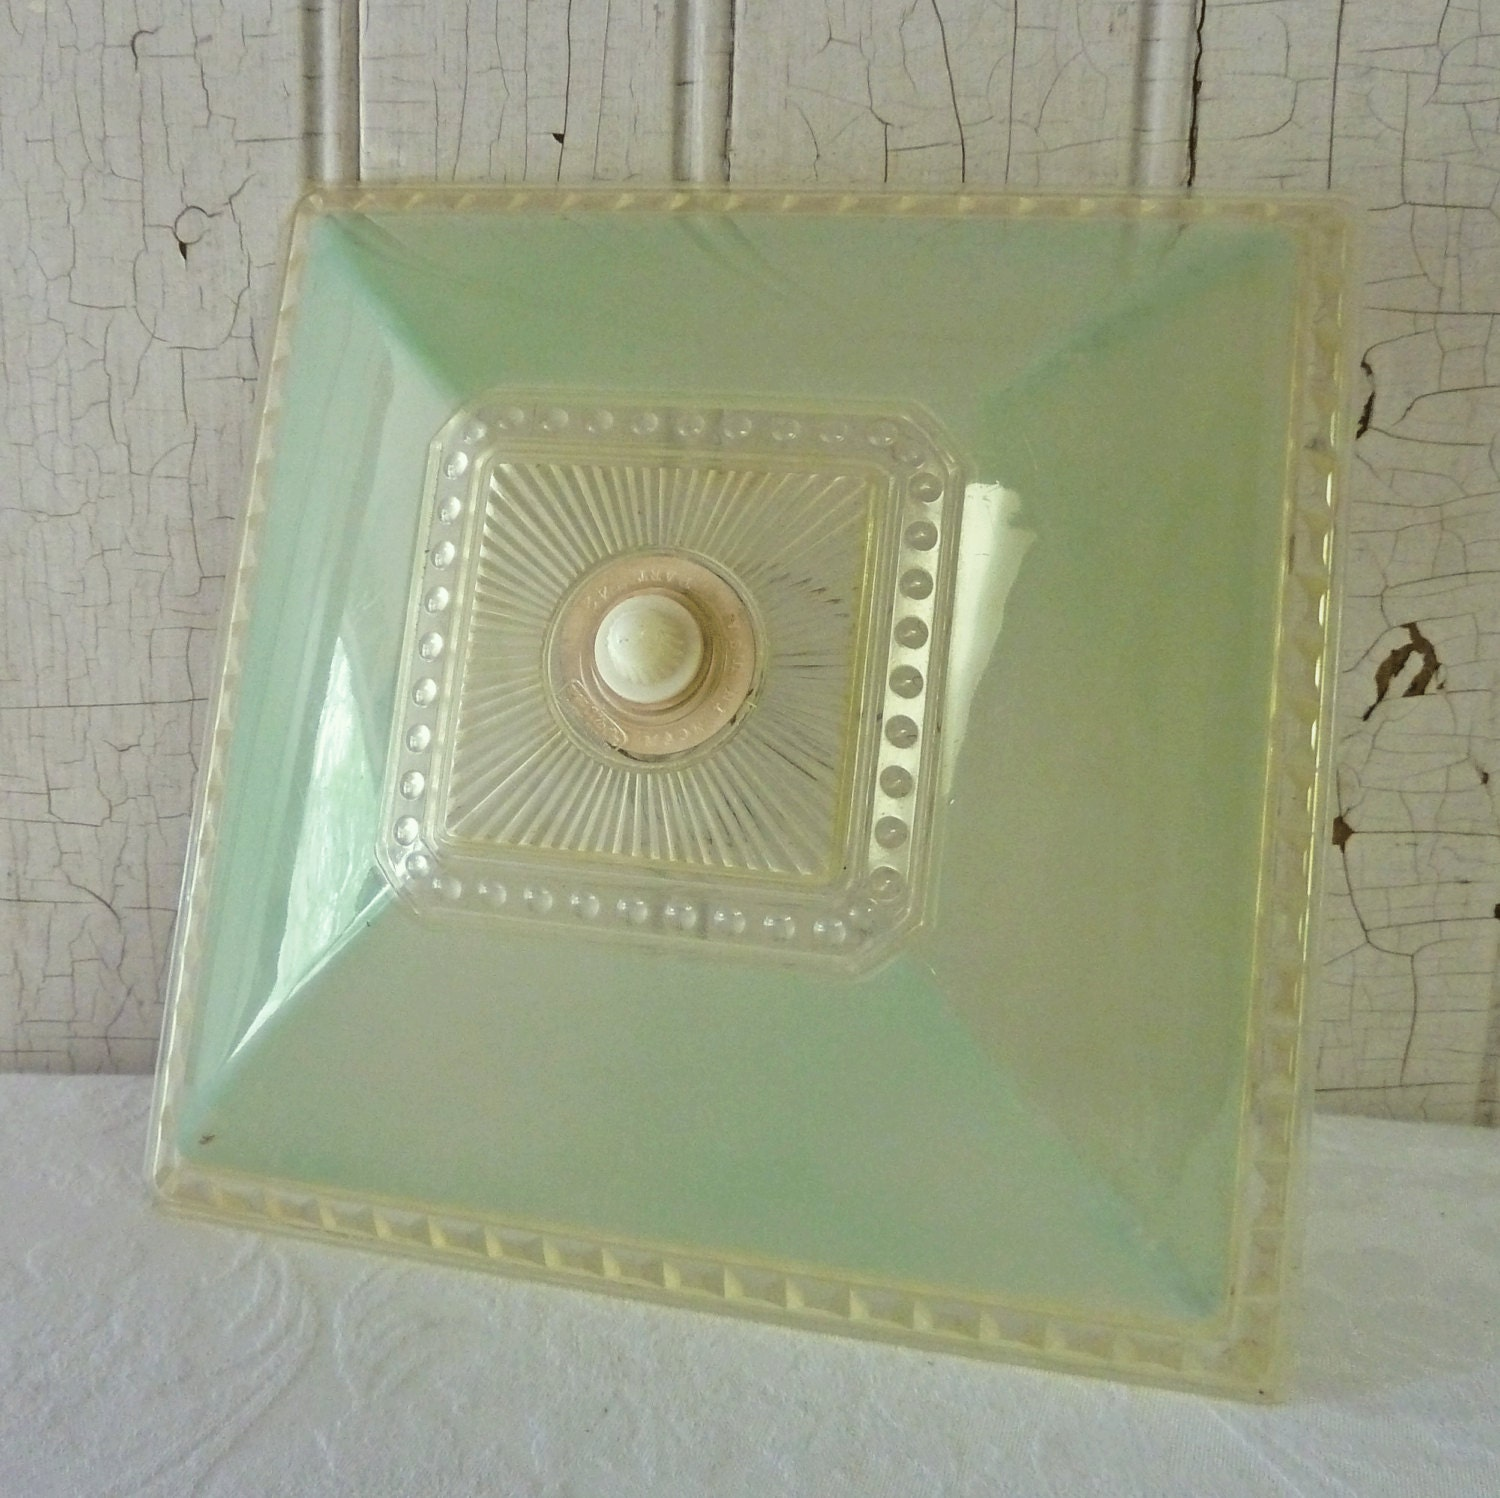 Ceiling Light Covers Clip On : Pale green square clip on plastic ceiling light cover s